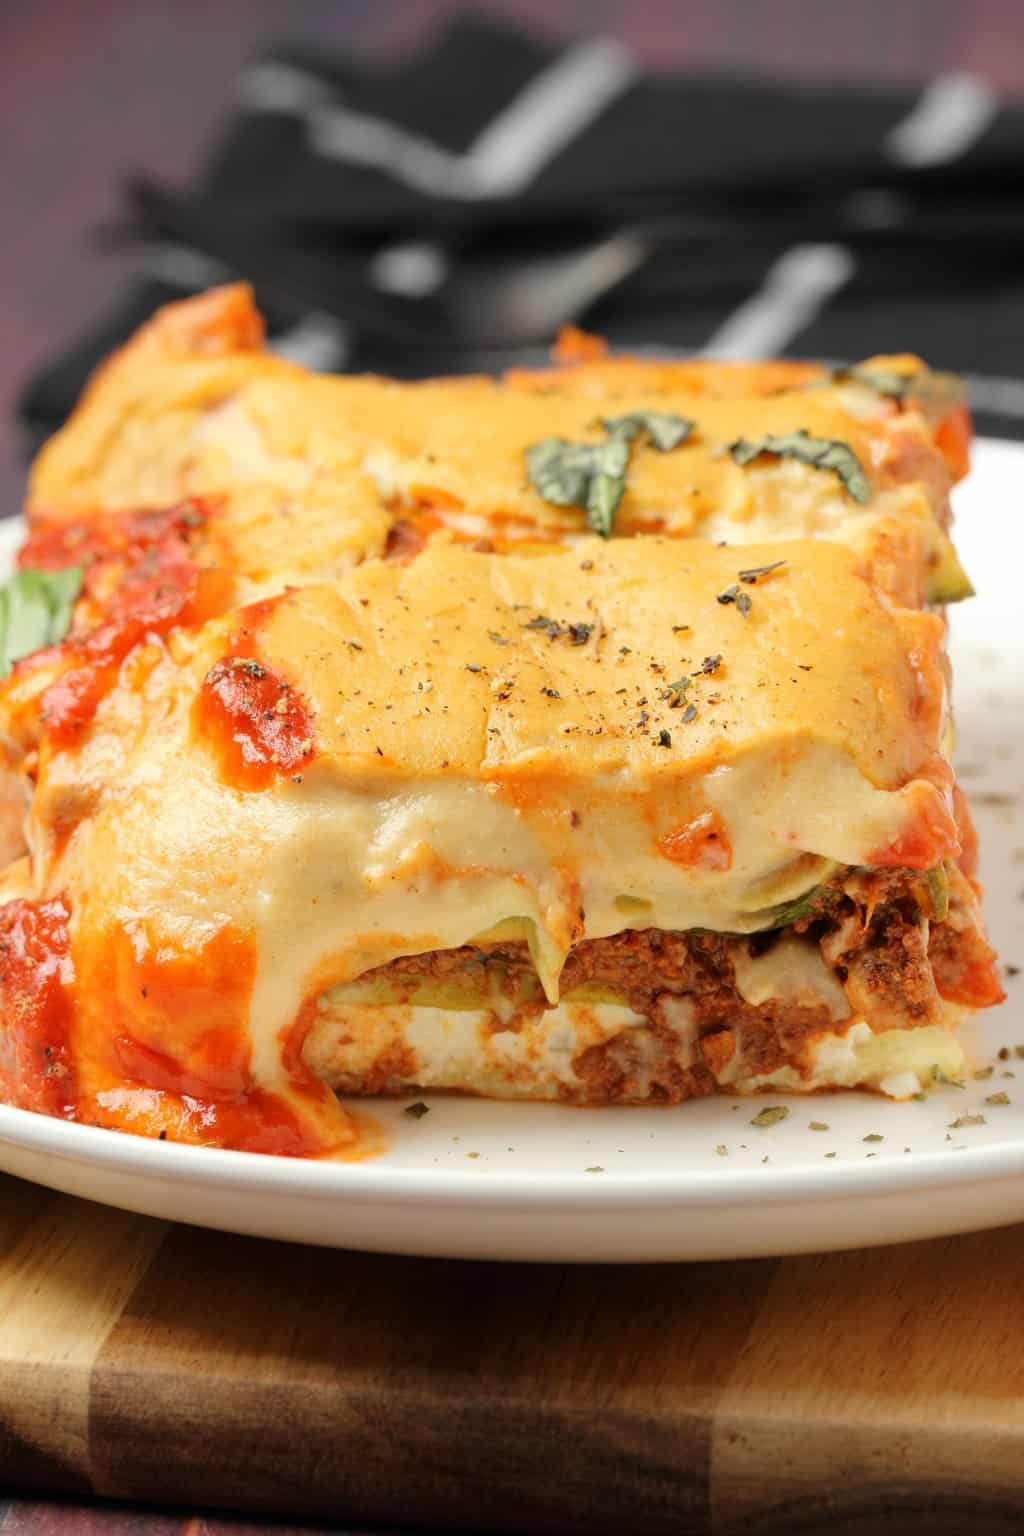 A slice of vegan lasagna on a white plate.